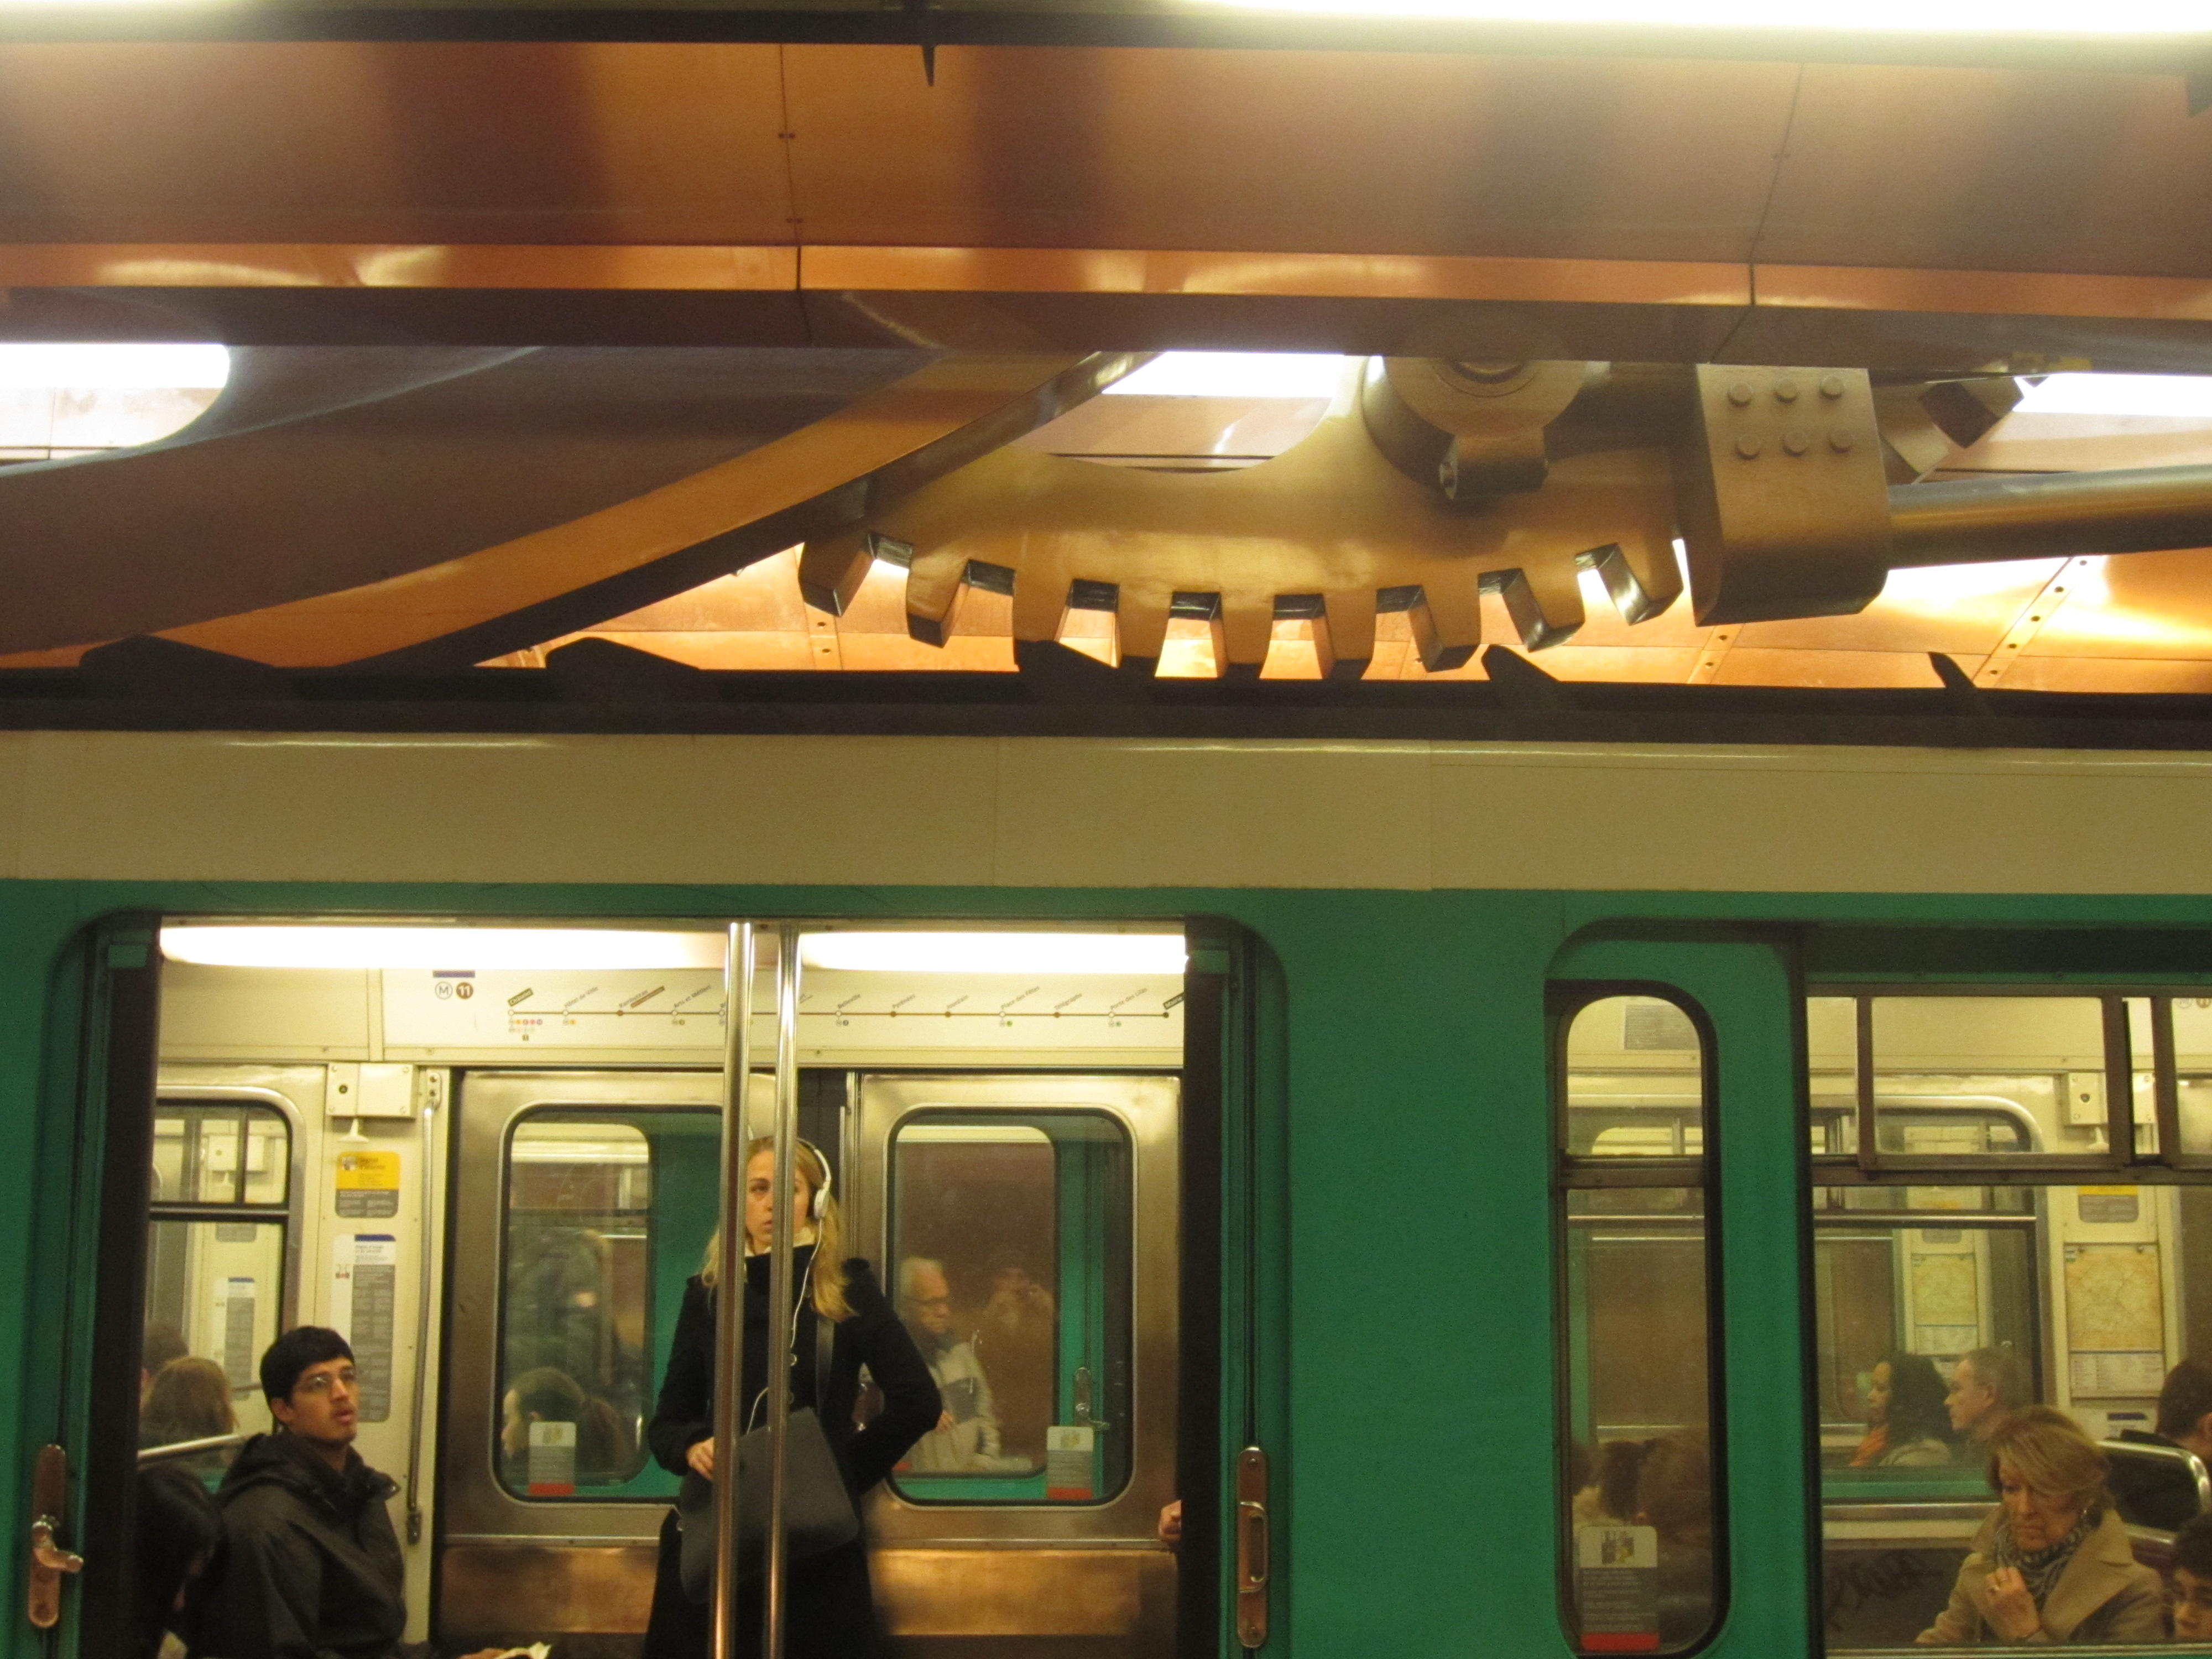 arts et metiers metro station with gears and cogs artwork